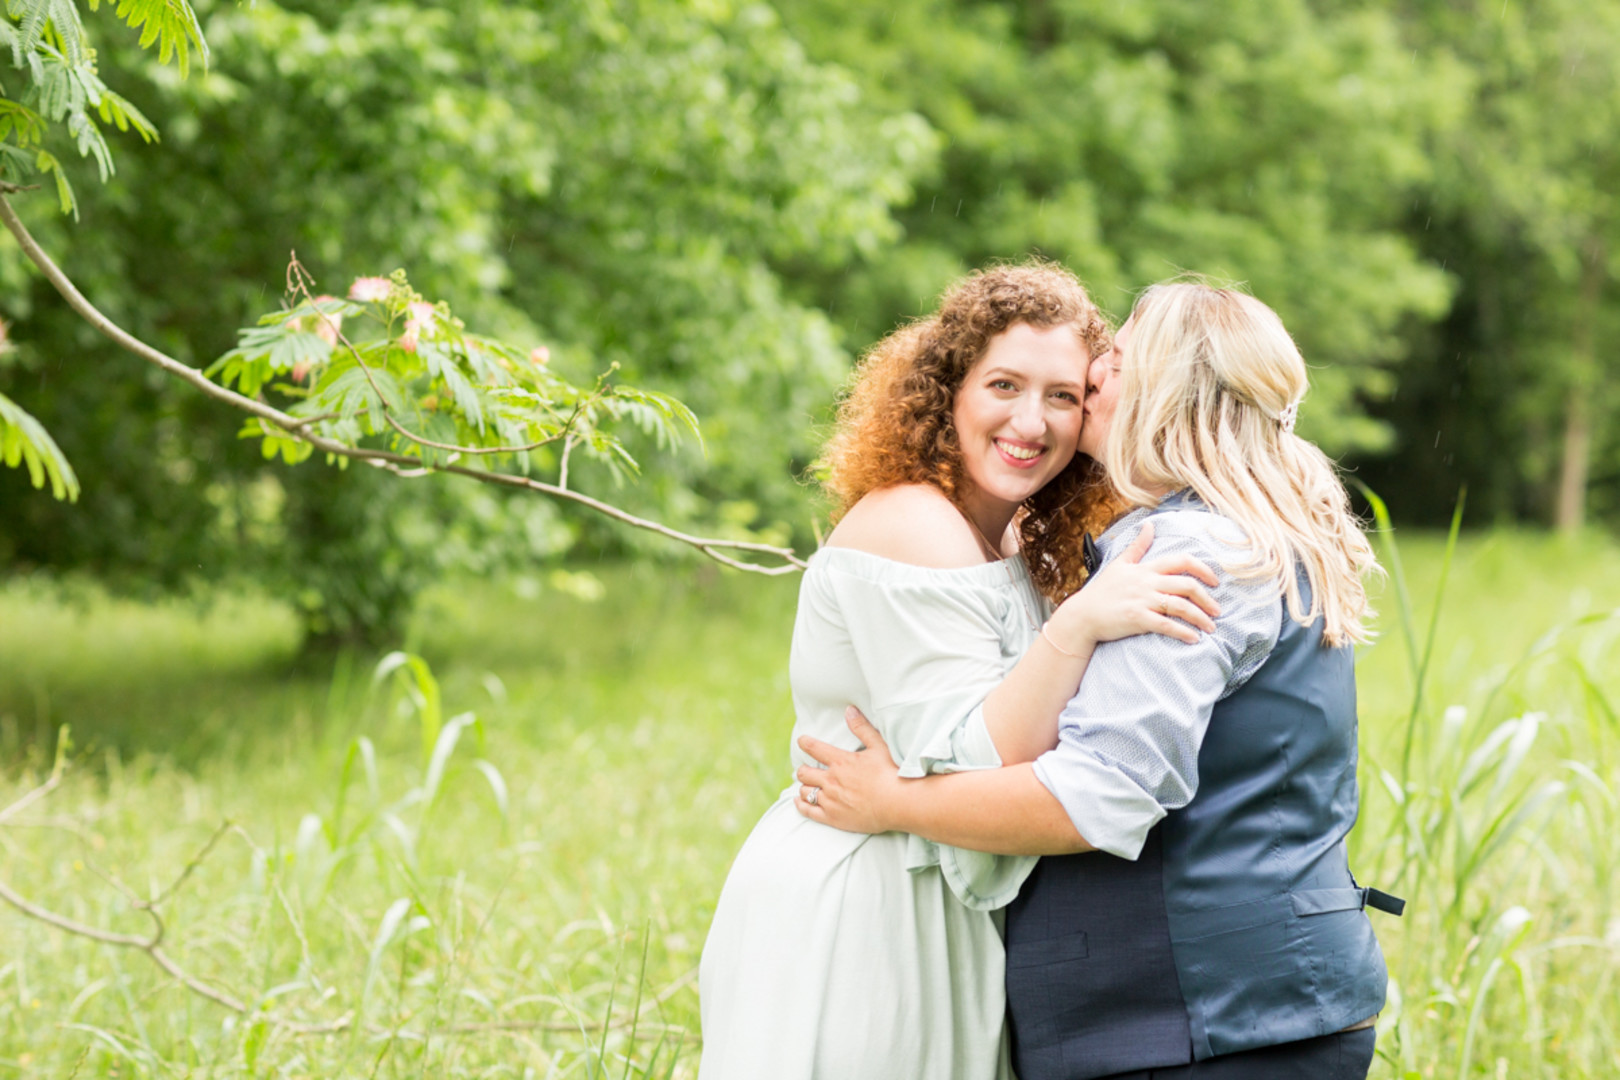 LGBTQ newlywed portraits in a field kissing on cheek columbia south carolina jessica hunt photography